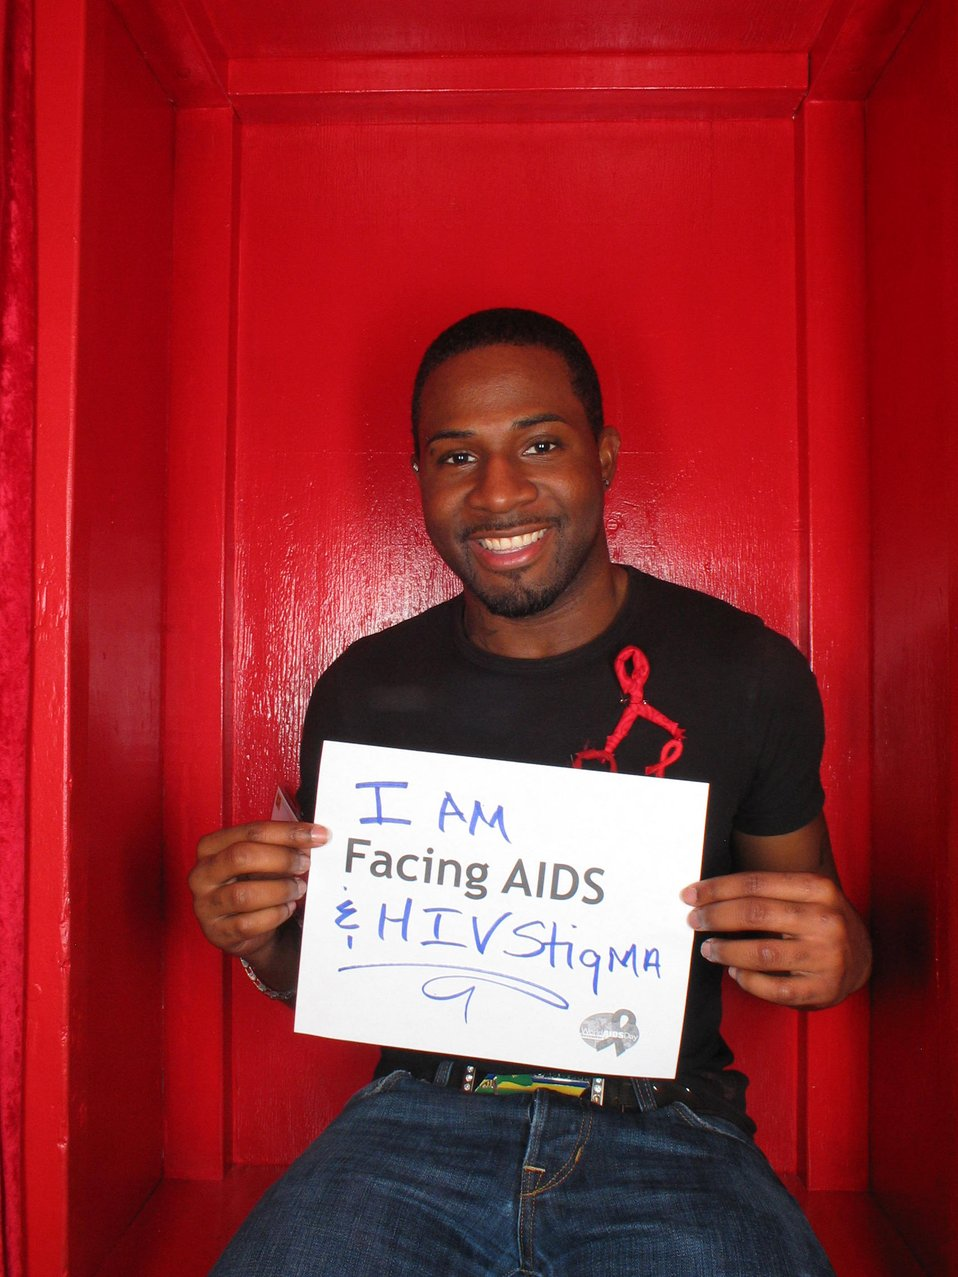 I am Facing AIDS and HIV stigma